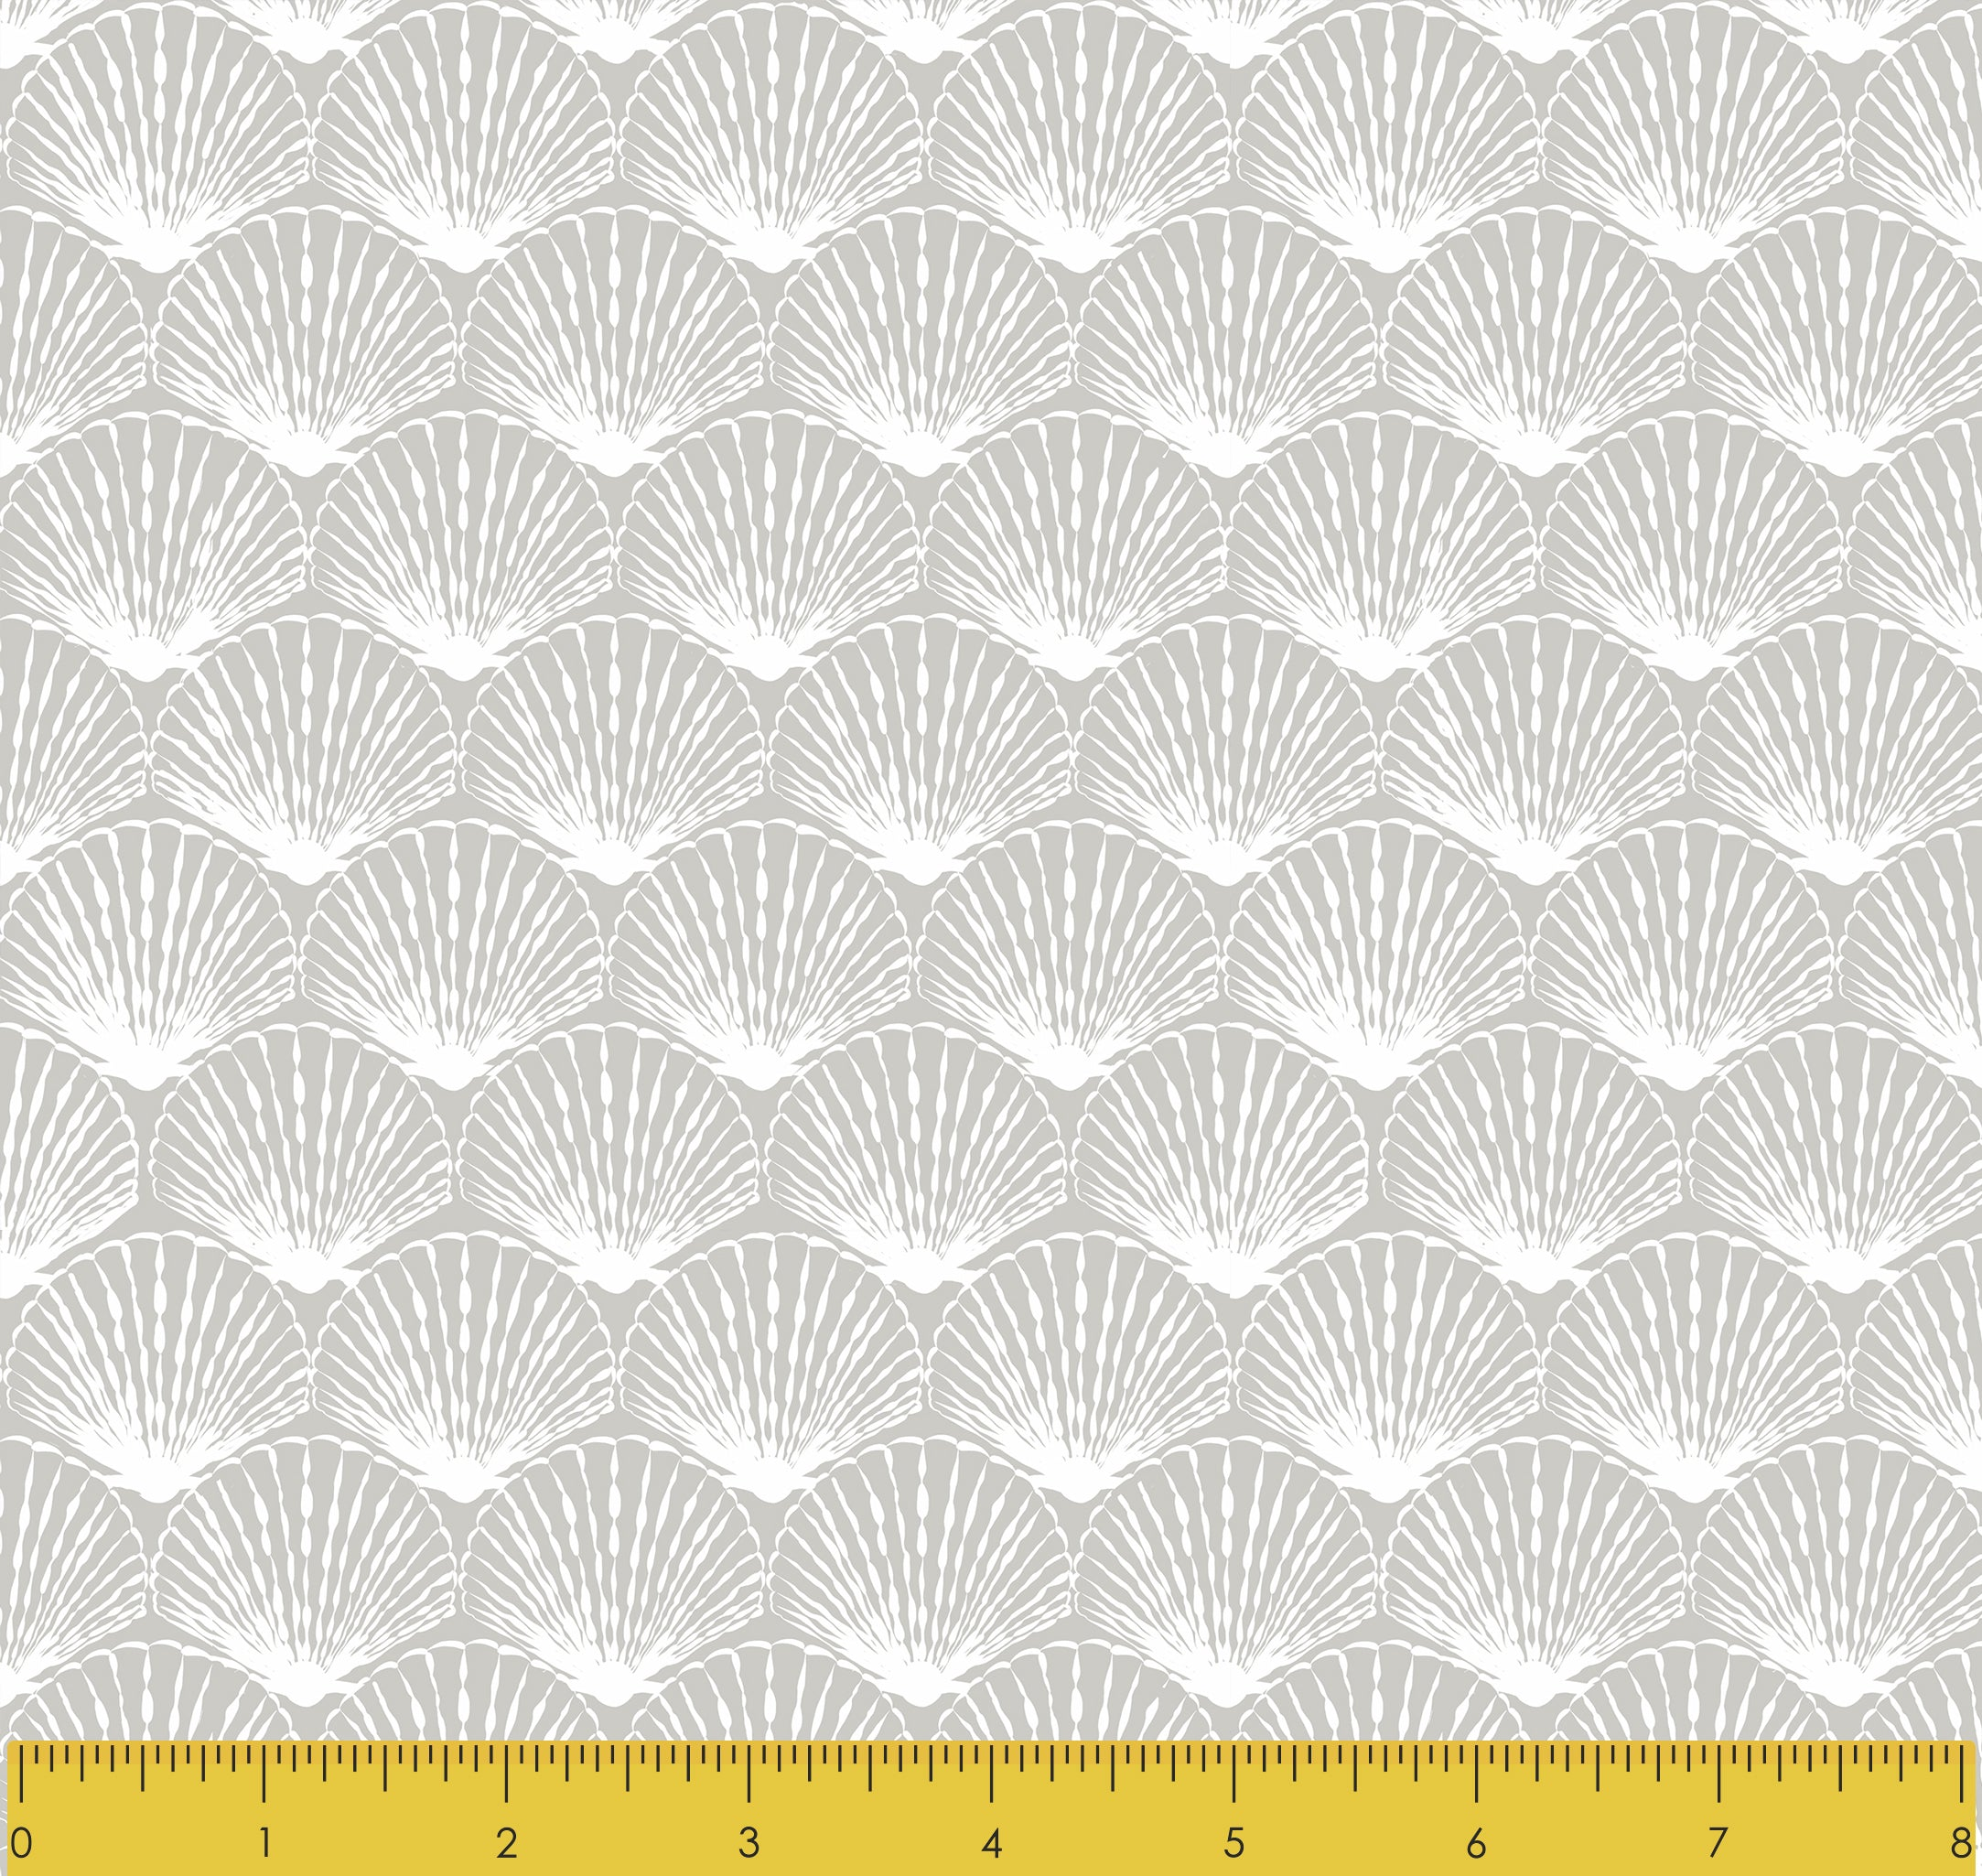 "Stitch & Sparkle Surrender To The Sea-White Fan Shell 100% Cotton Fabric 44"" Wide, Quilt Crafts Cut by The Yard"